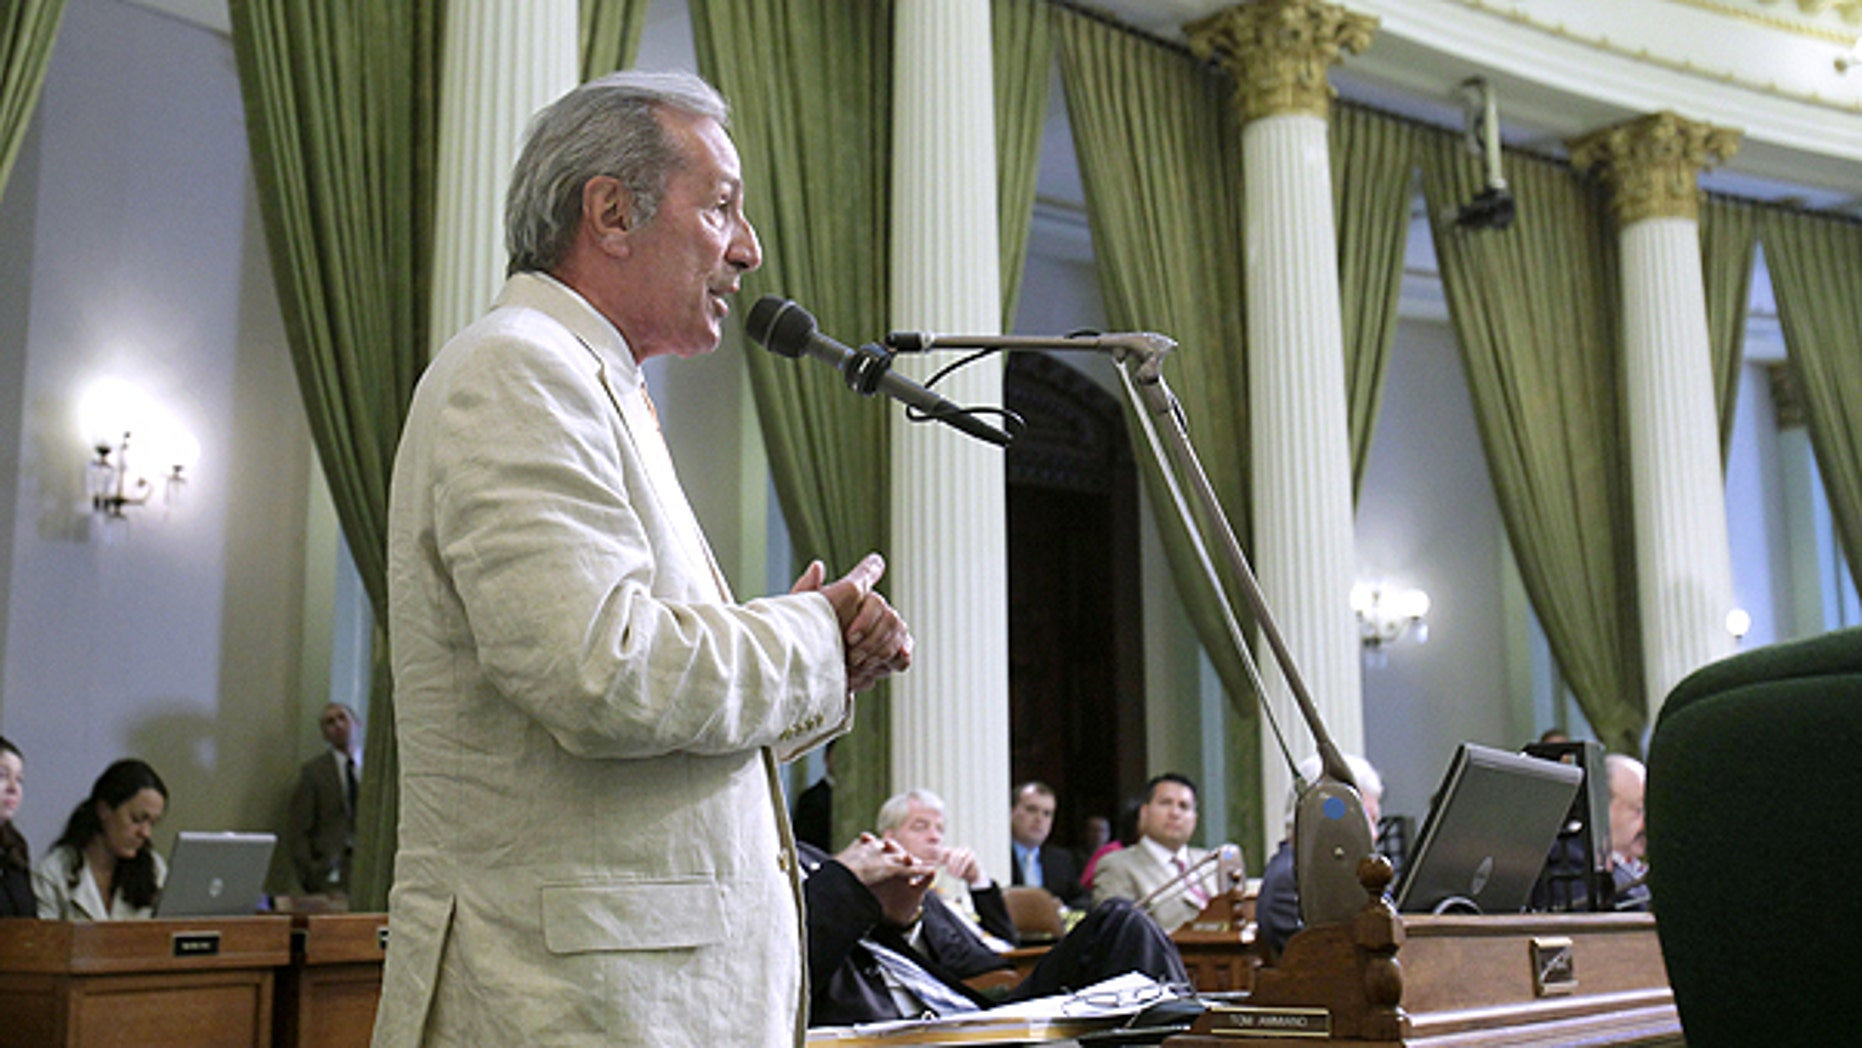 July 5: Assemblyman Tom Ammiano, D-San Francisco, urged lawmakers to approve a measure he was carrying requiring public schools to teach the historical contributions of gay Americans, was approved by the Assembly in Sacramento, Calif.